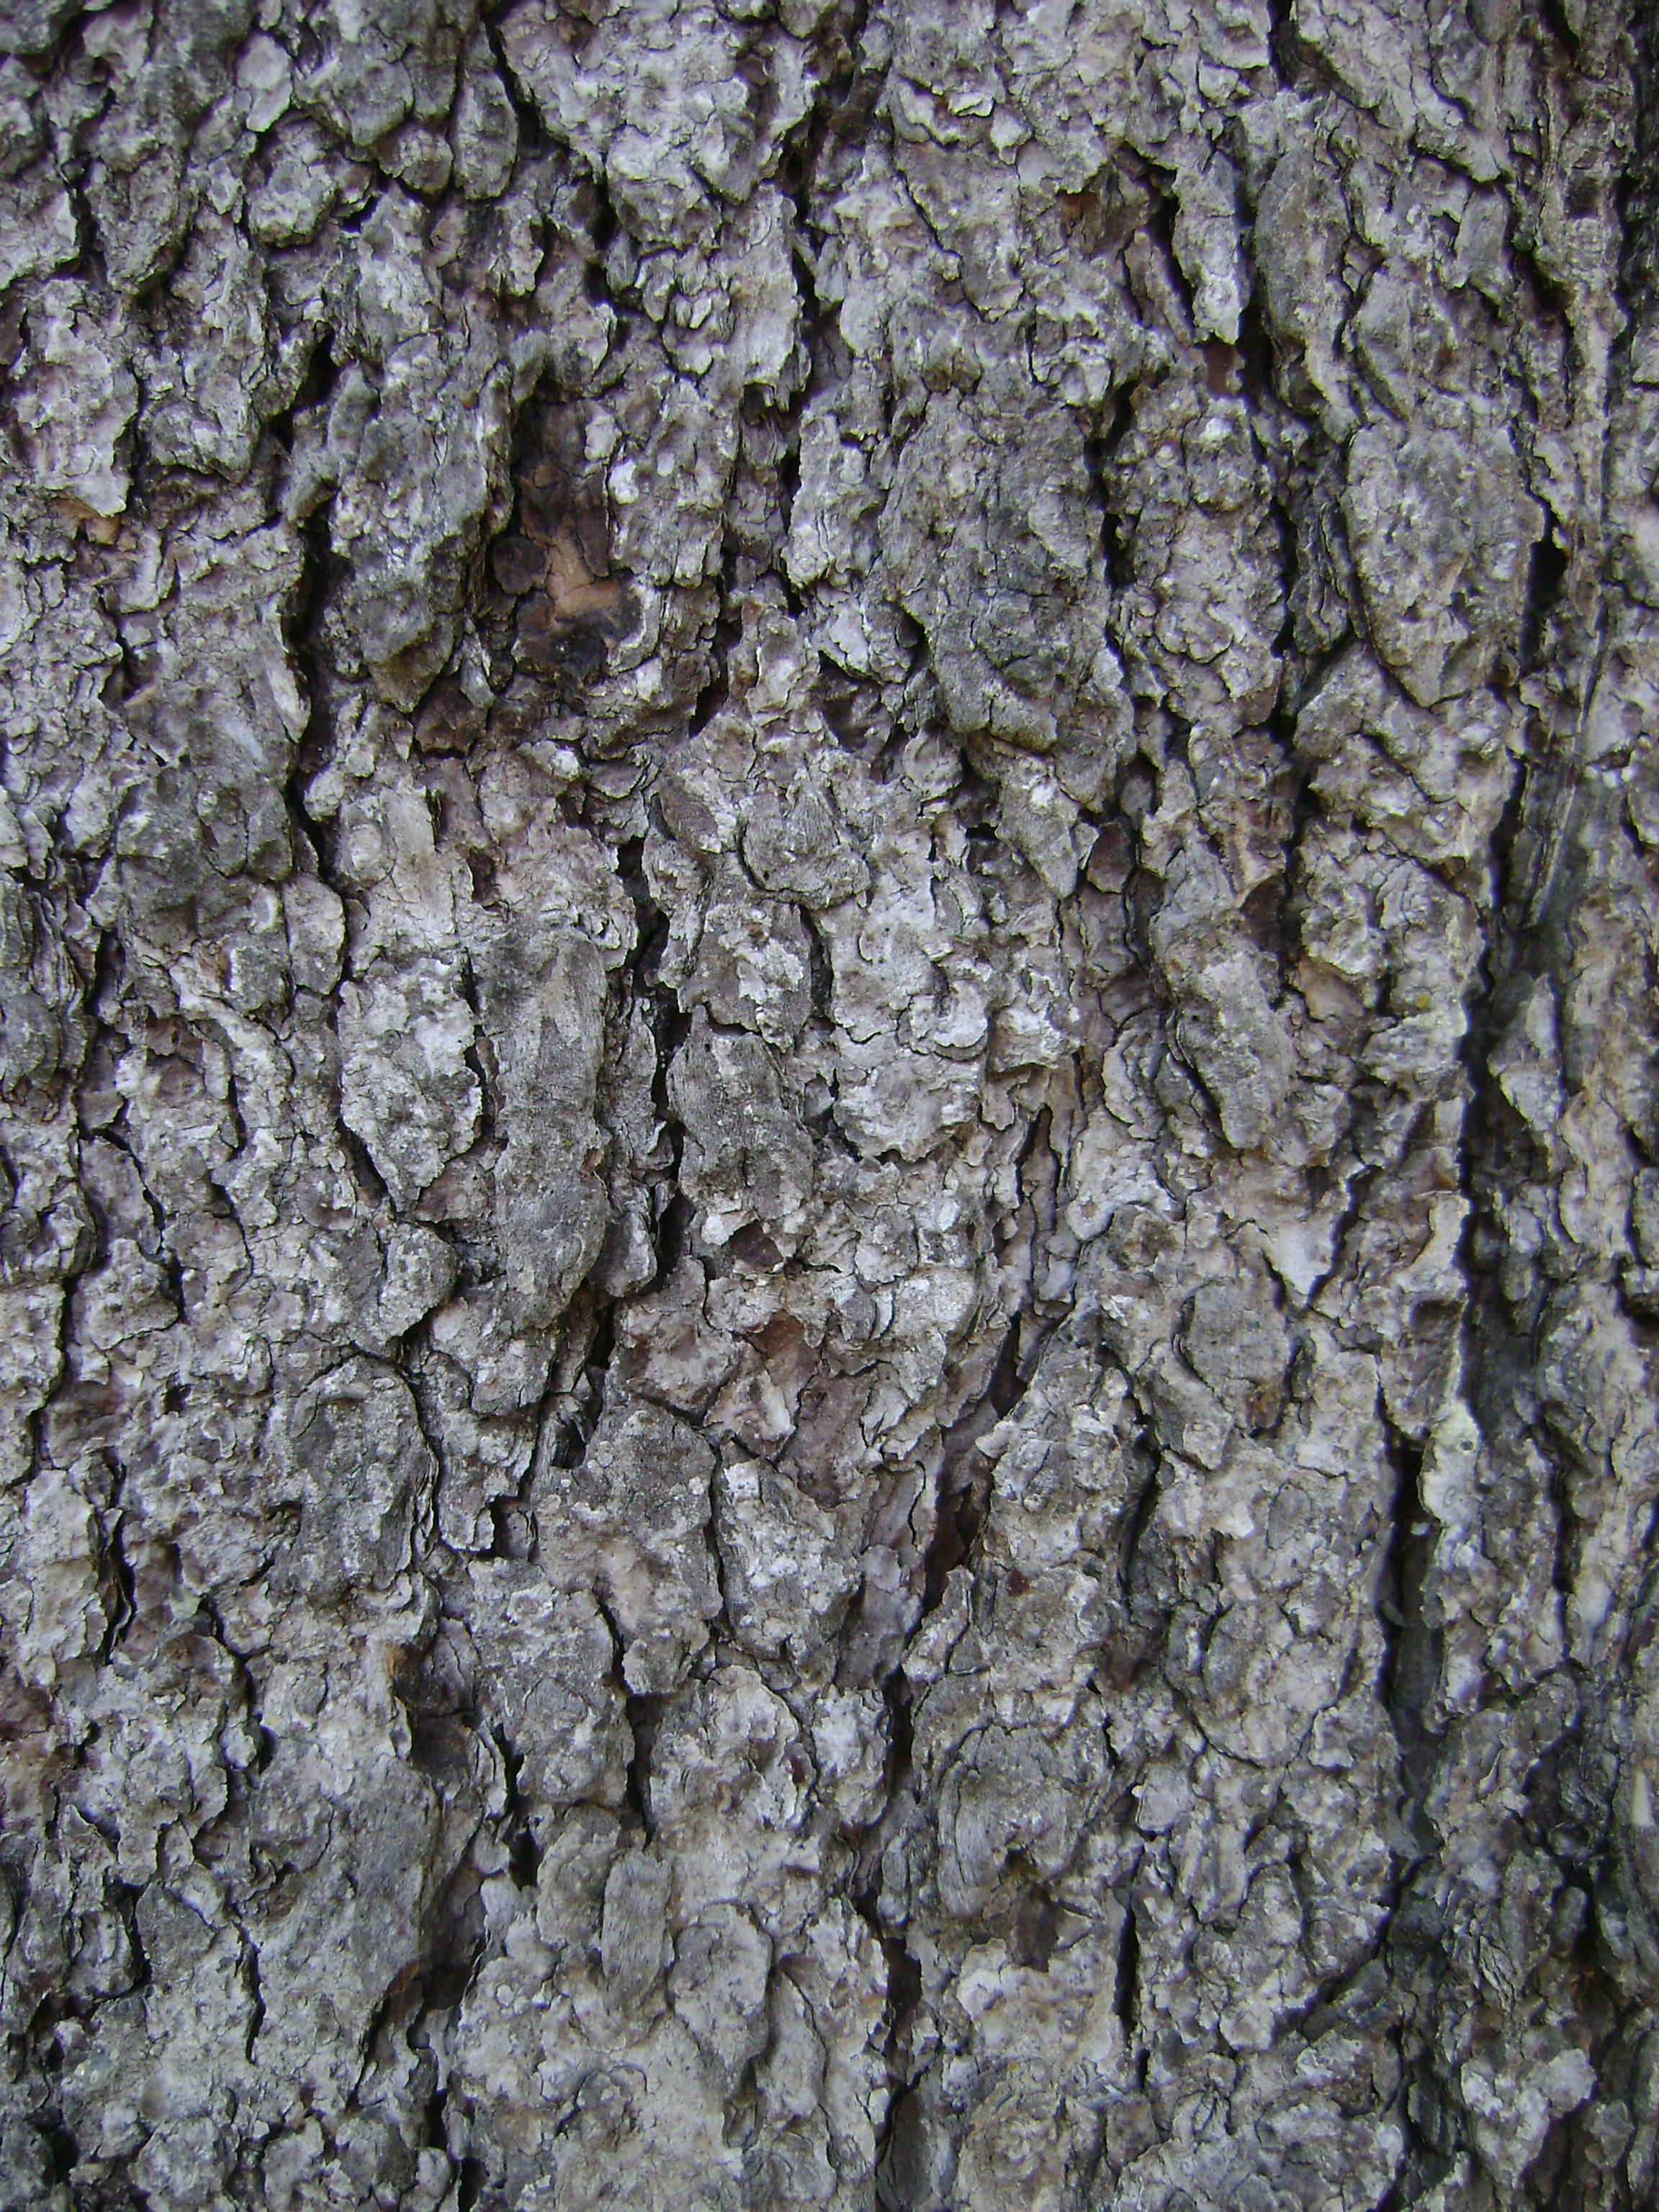 Photograph of a douglas fir tree's bark.